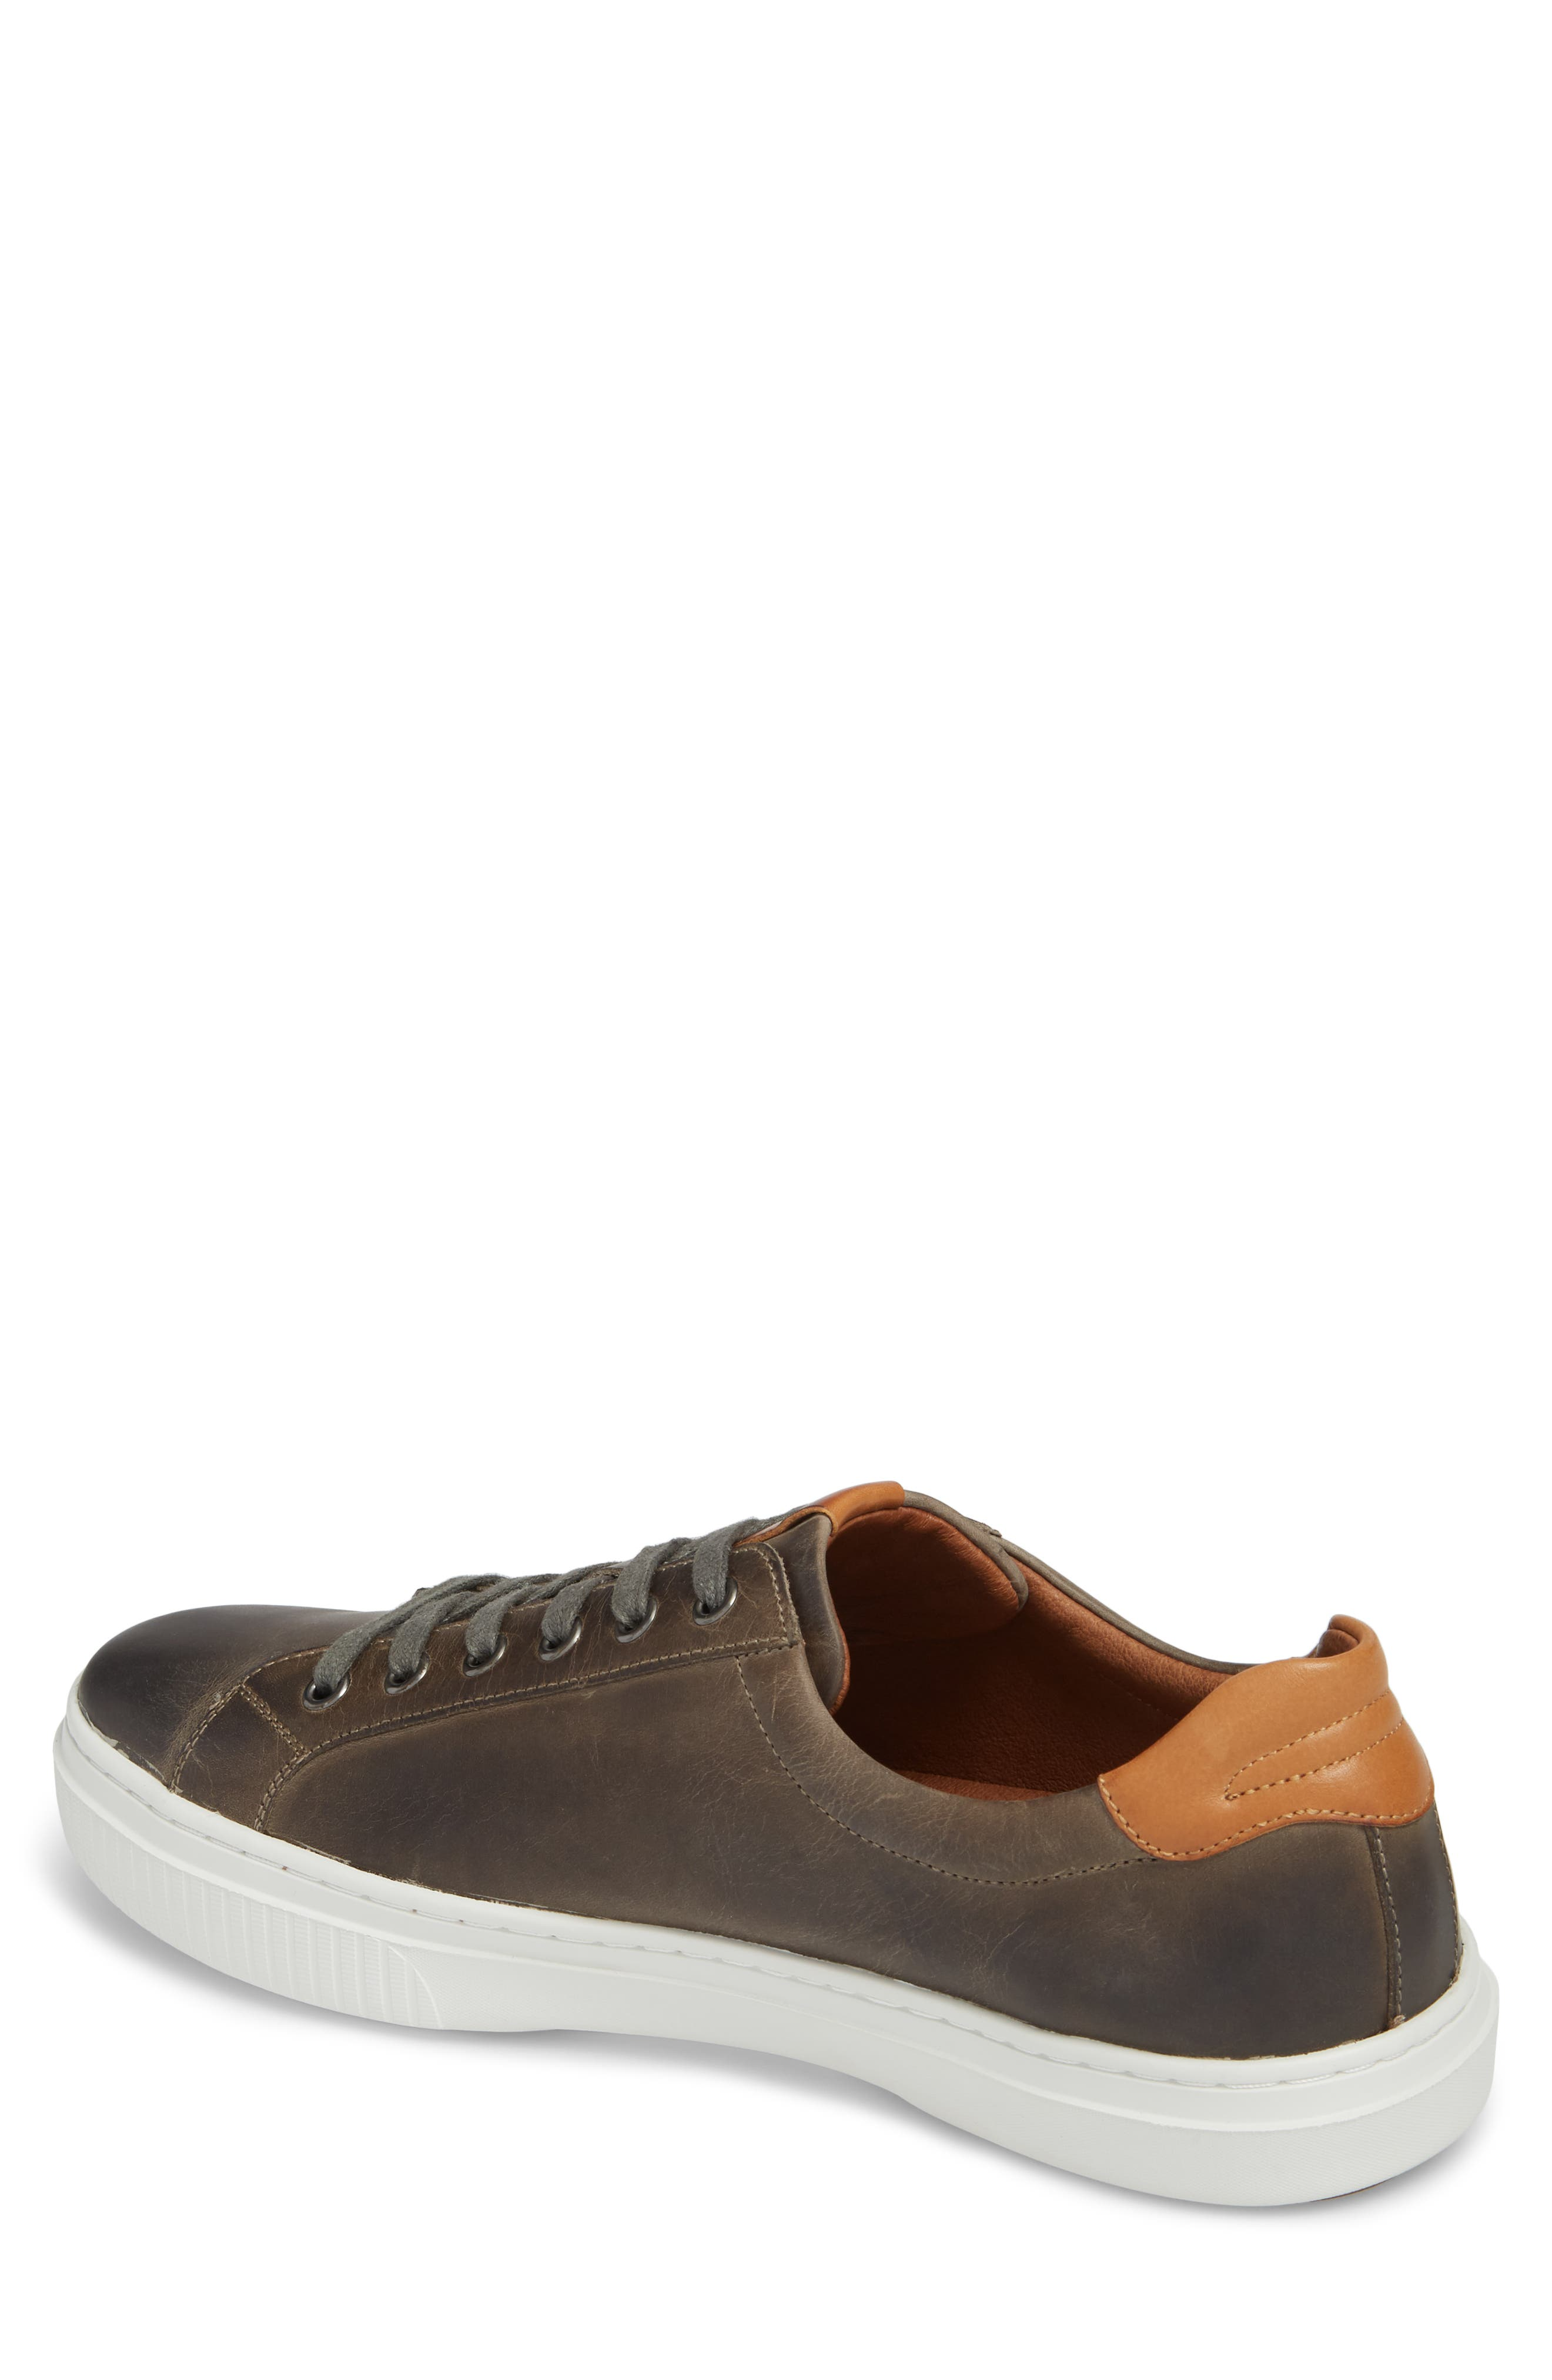 Toliver Low Top Sneaker,                             Alternate thumbnail 2, color,                             GREY LEATHER